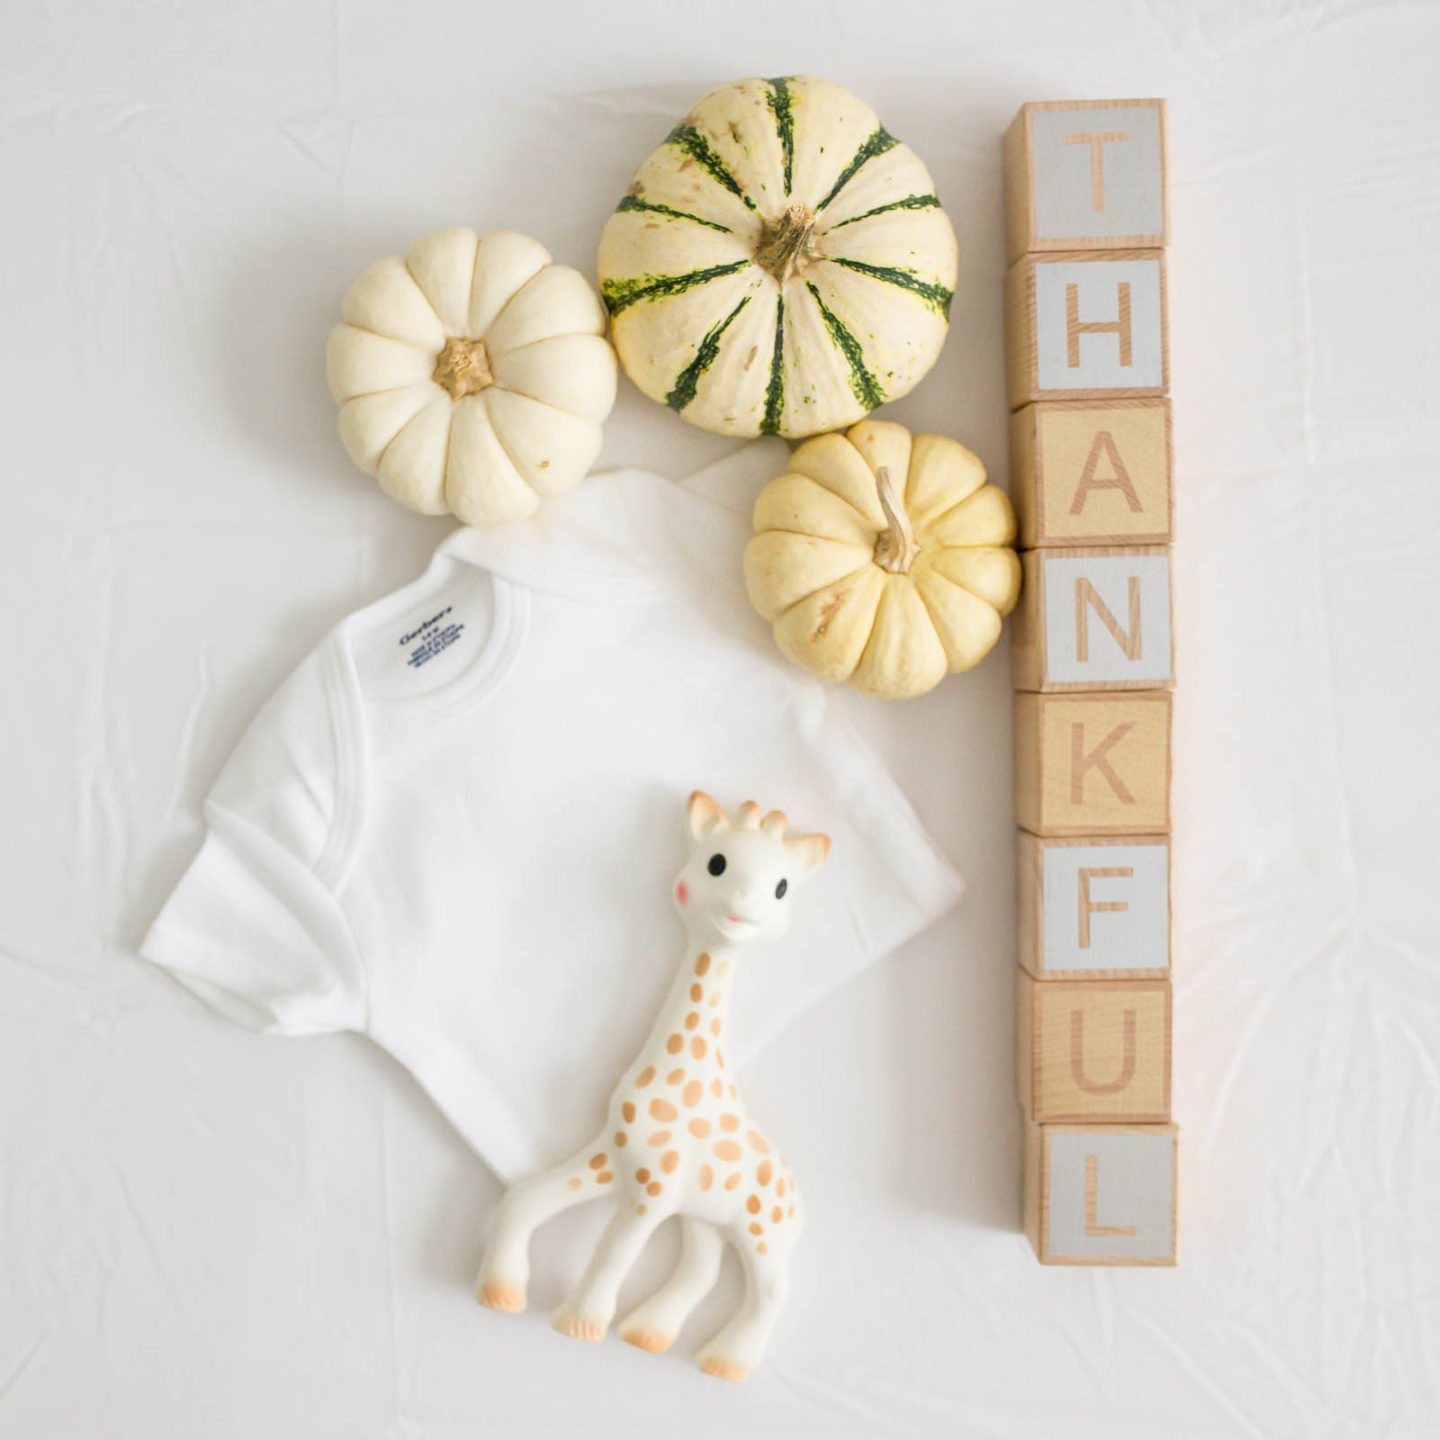 THANKFUL baby flatlay - black friday cyber week cyber monday sale roundup